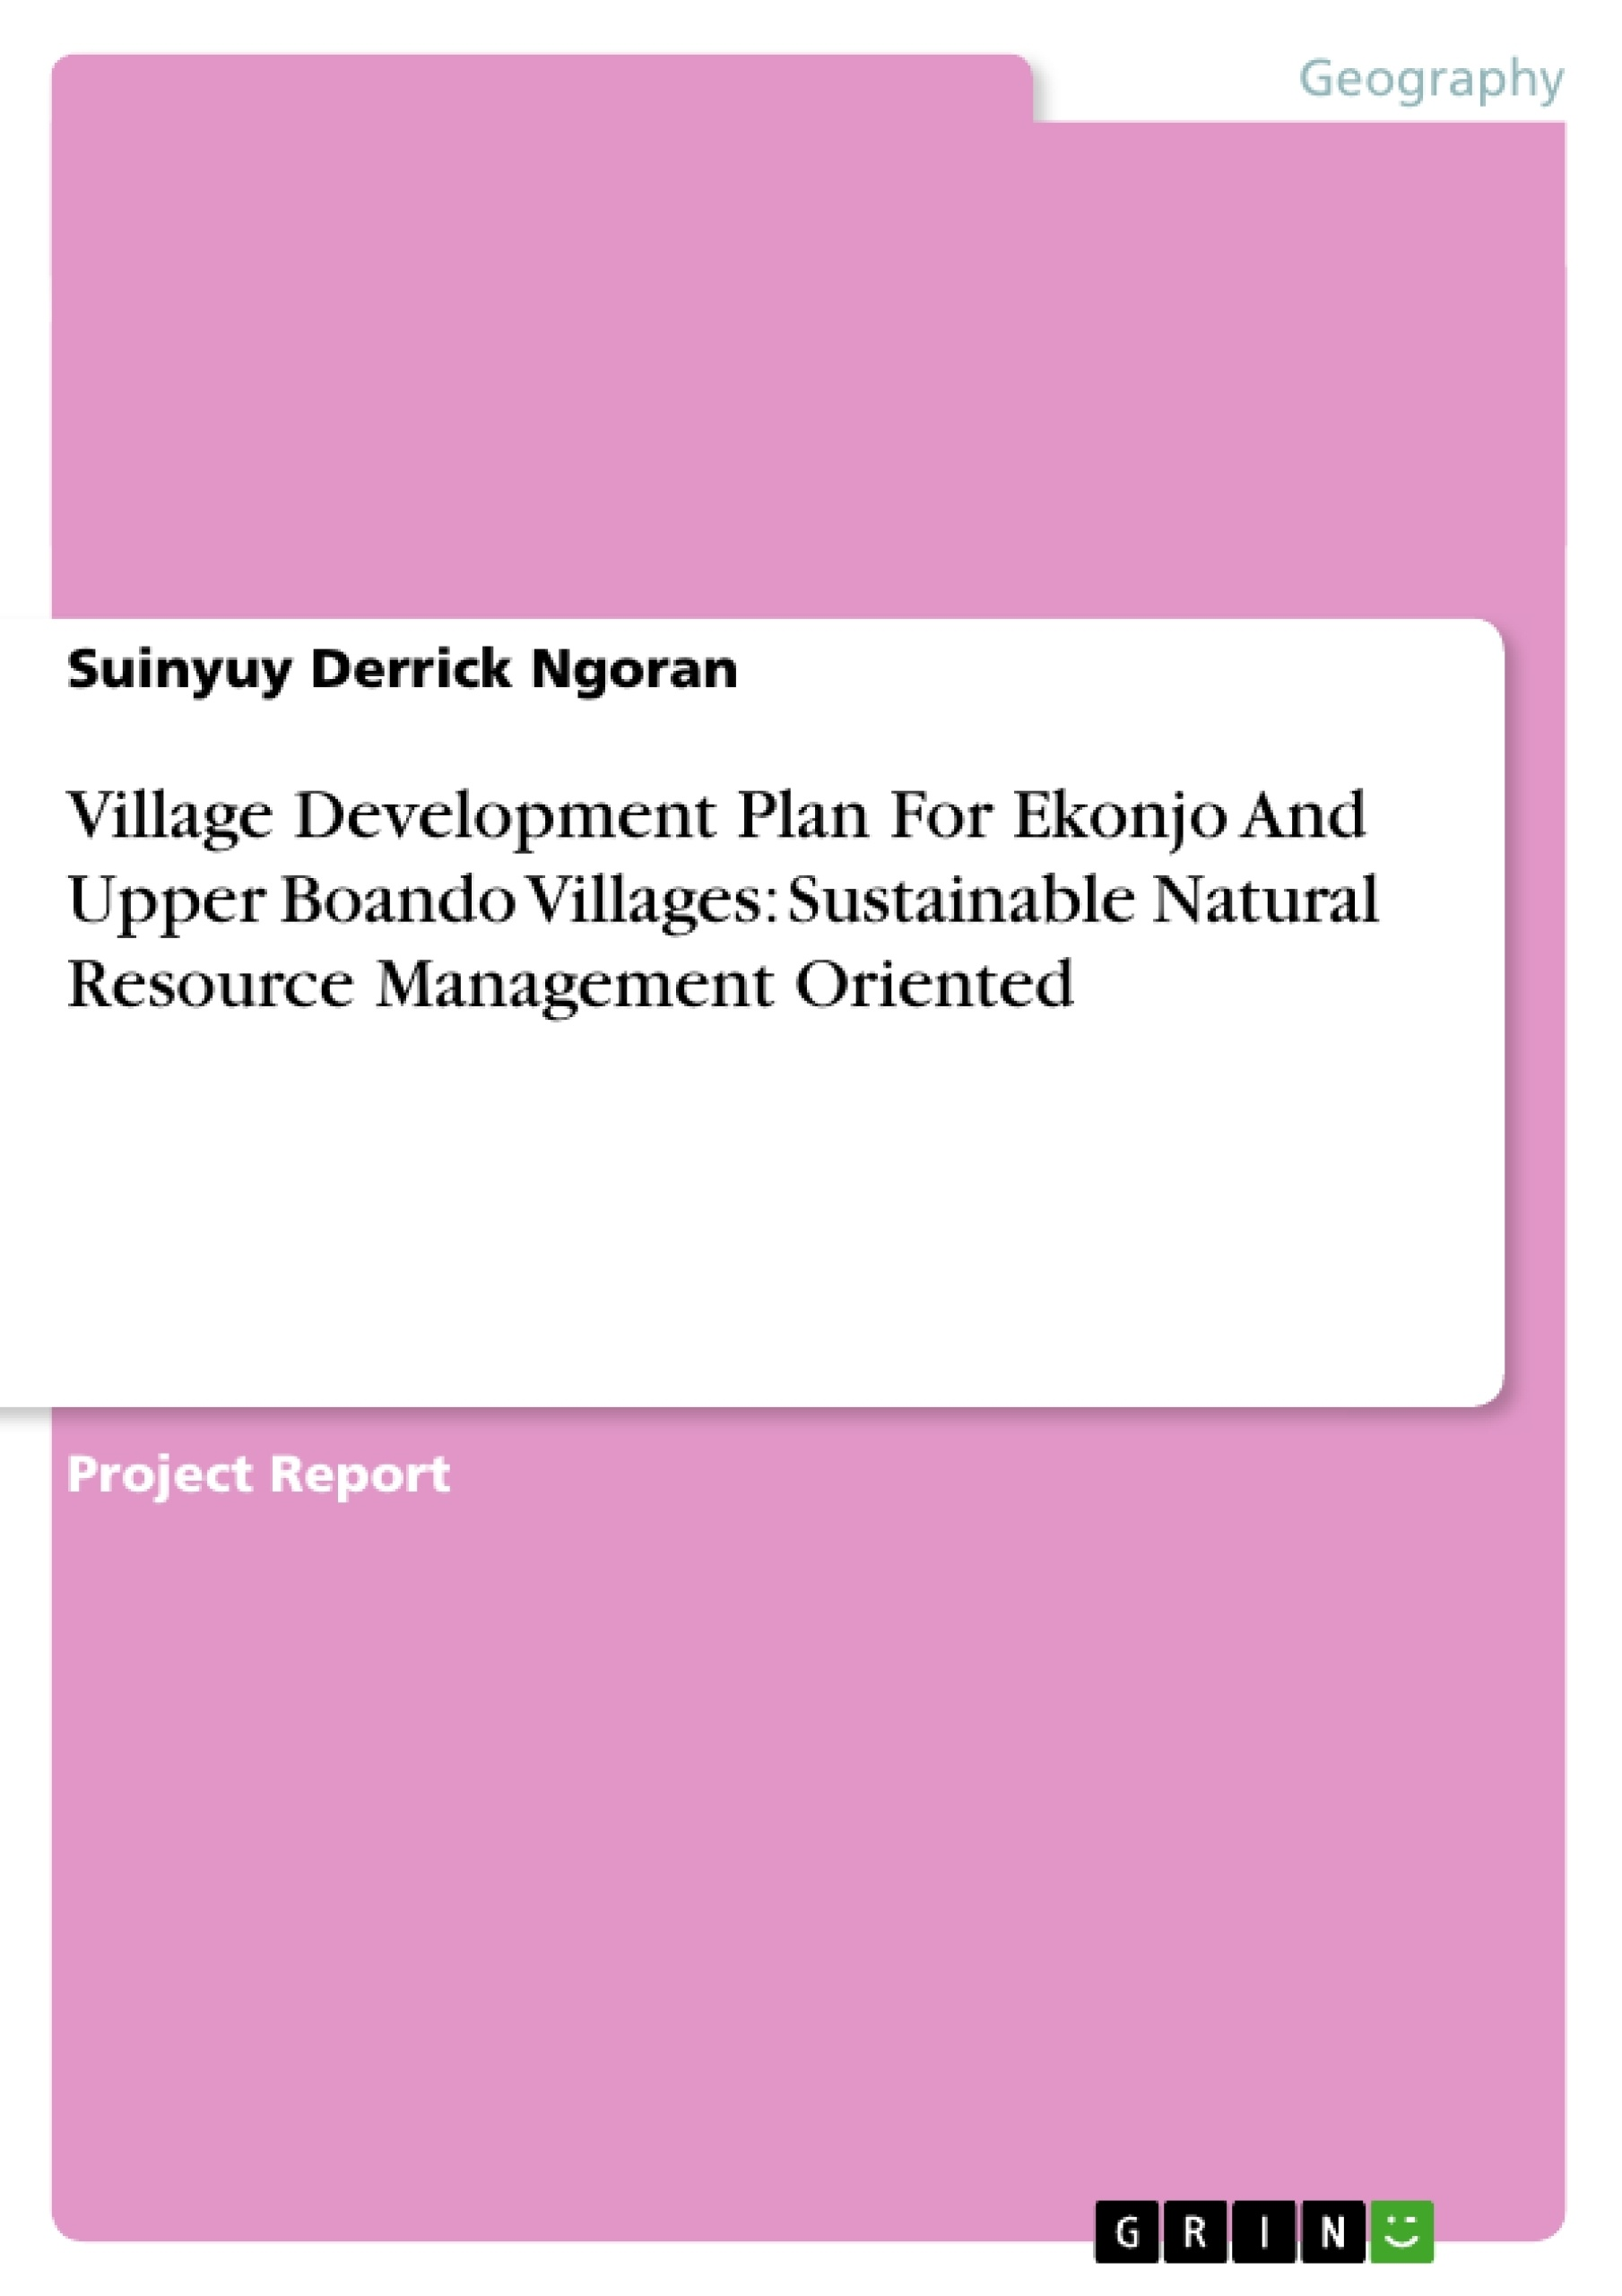 Title: Village Development Plan For Ekonjo And Upper Boando Villages: Sustainable Natural Resource Management Oriented